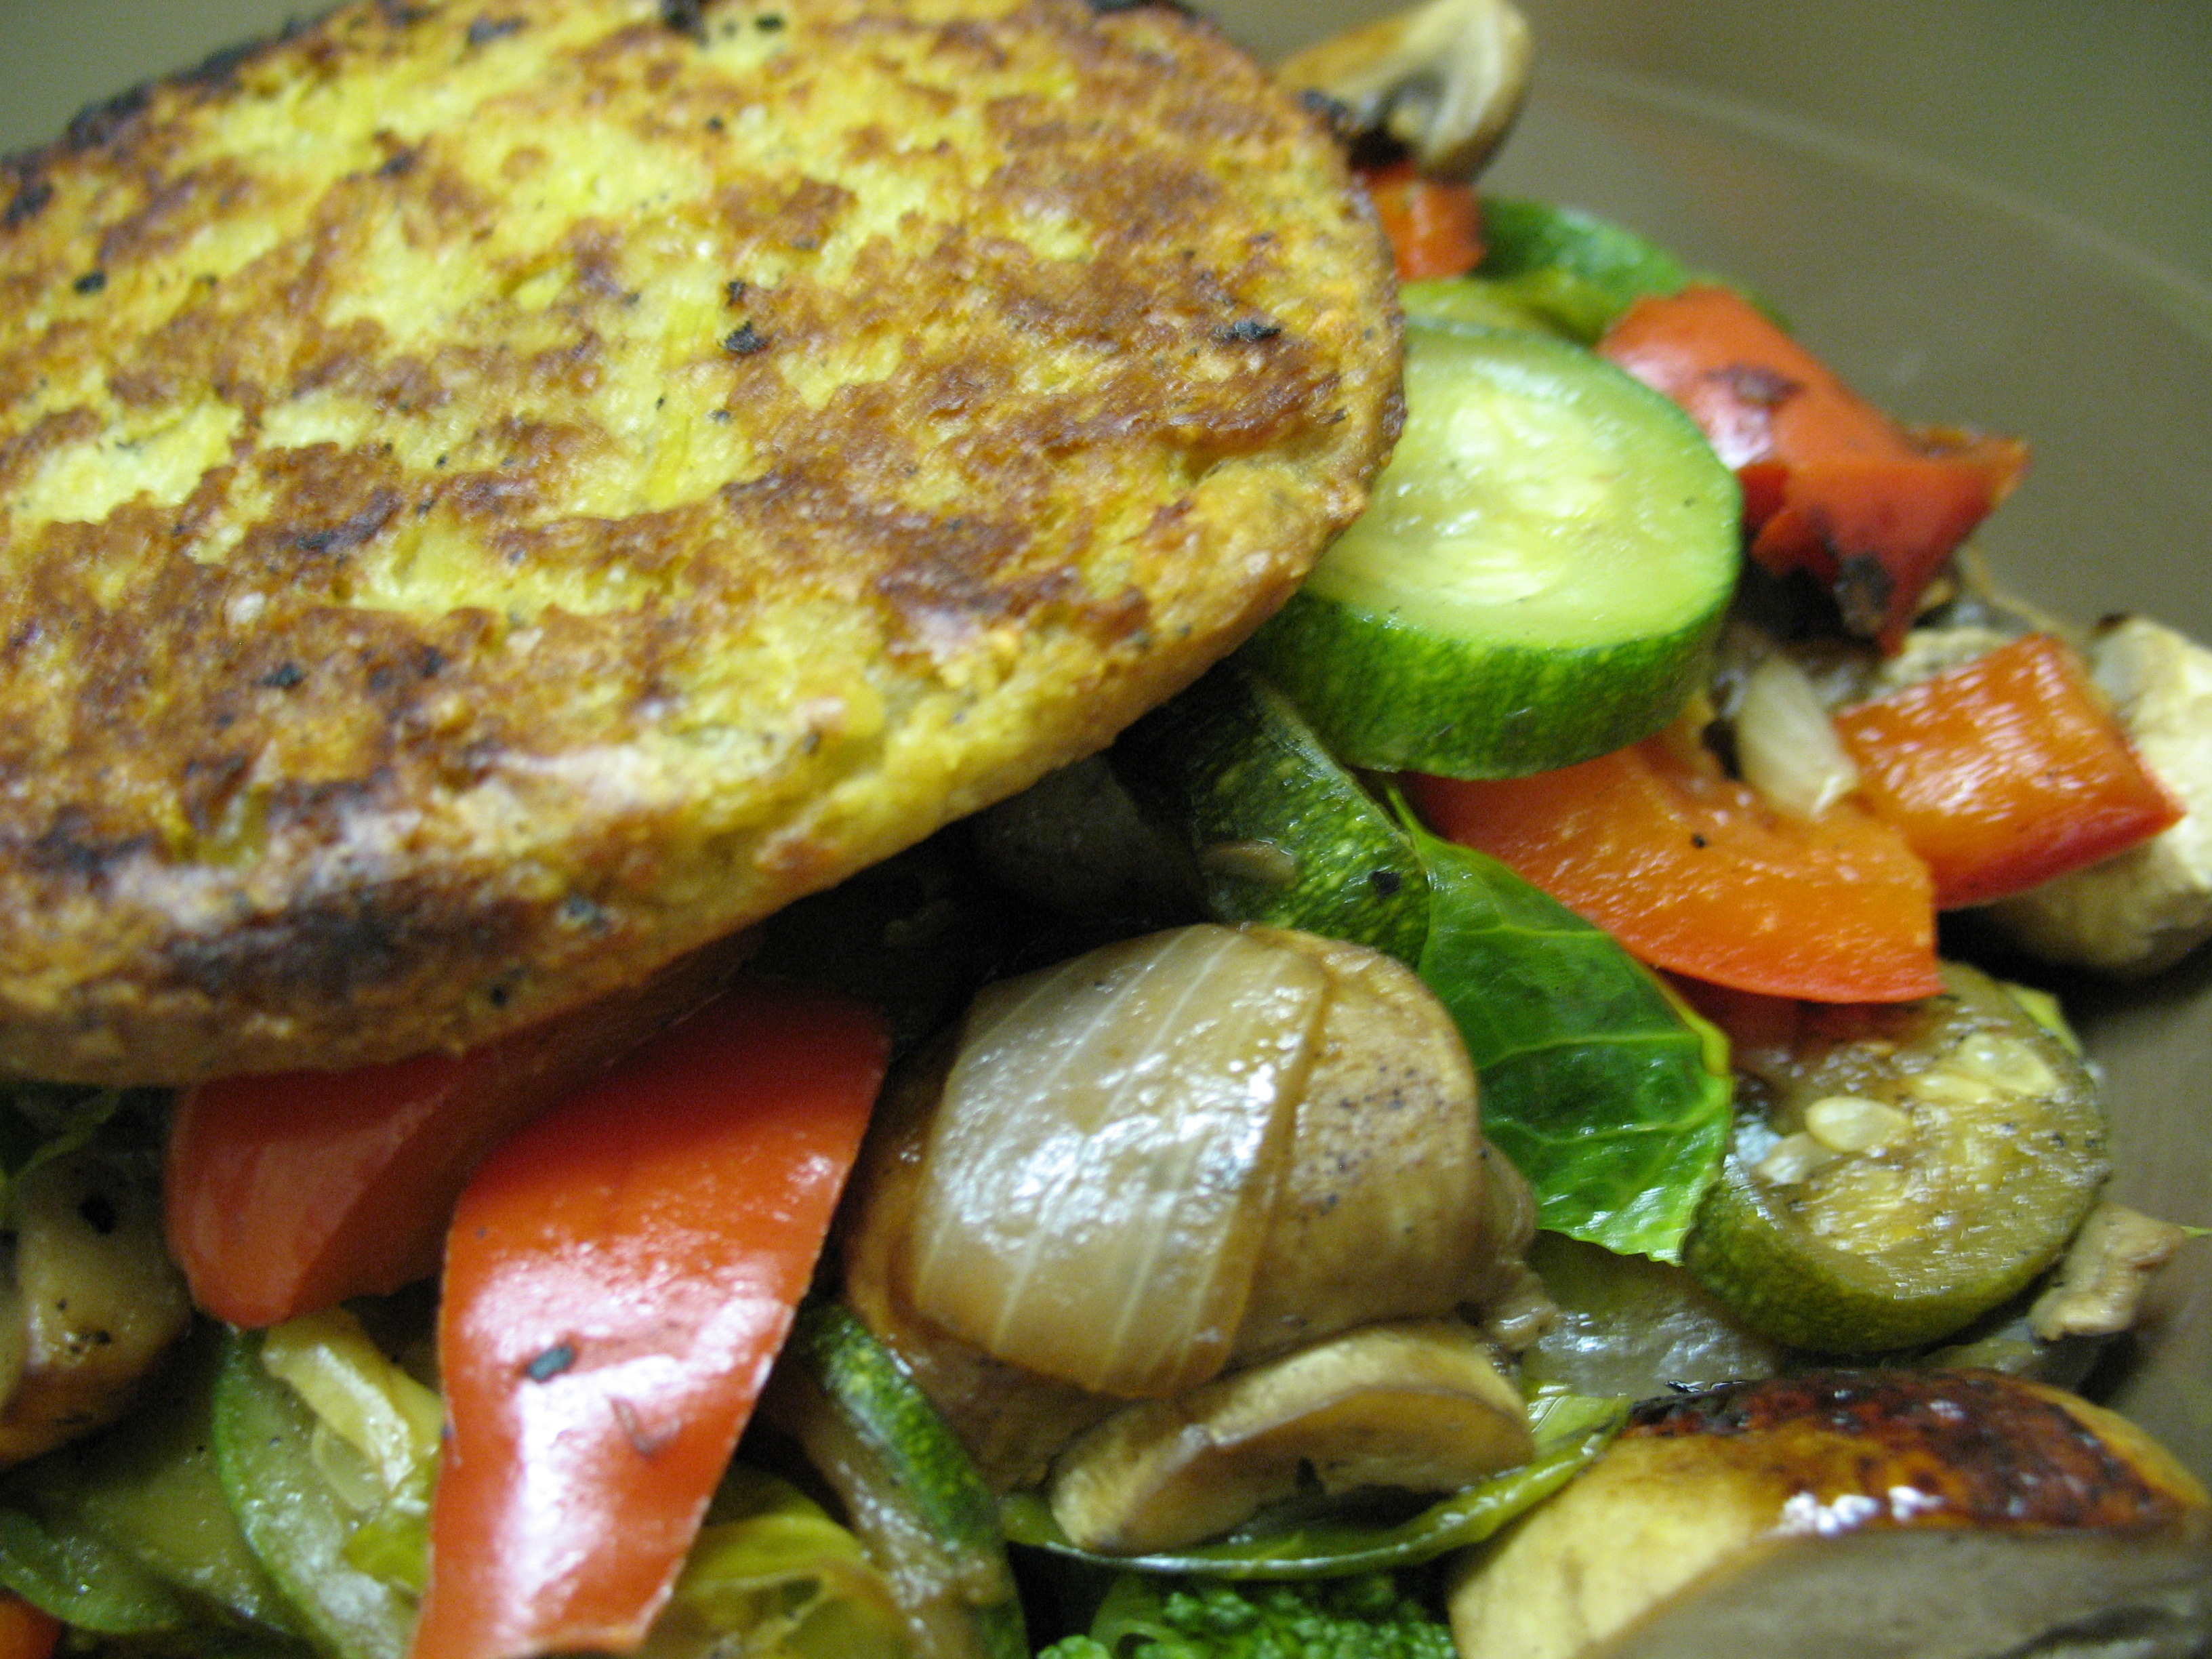 Burger HEAB style - no bread and served atop a mound 'o veggies.